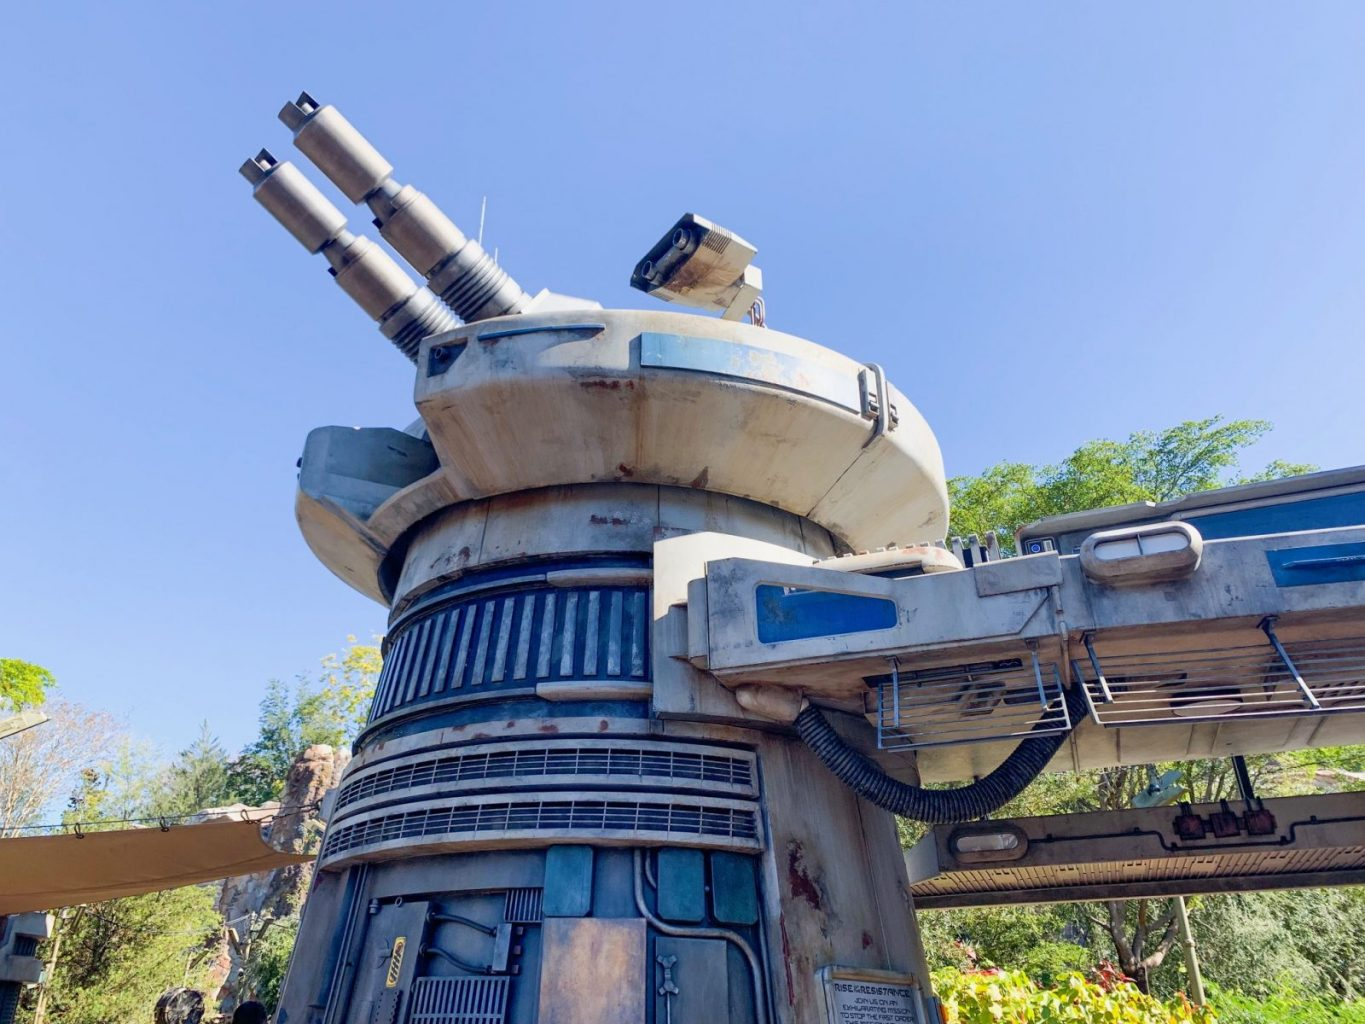 Entrance blaster to Rise Of The Resistance at Hollywood Studios